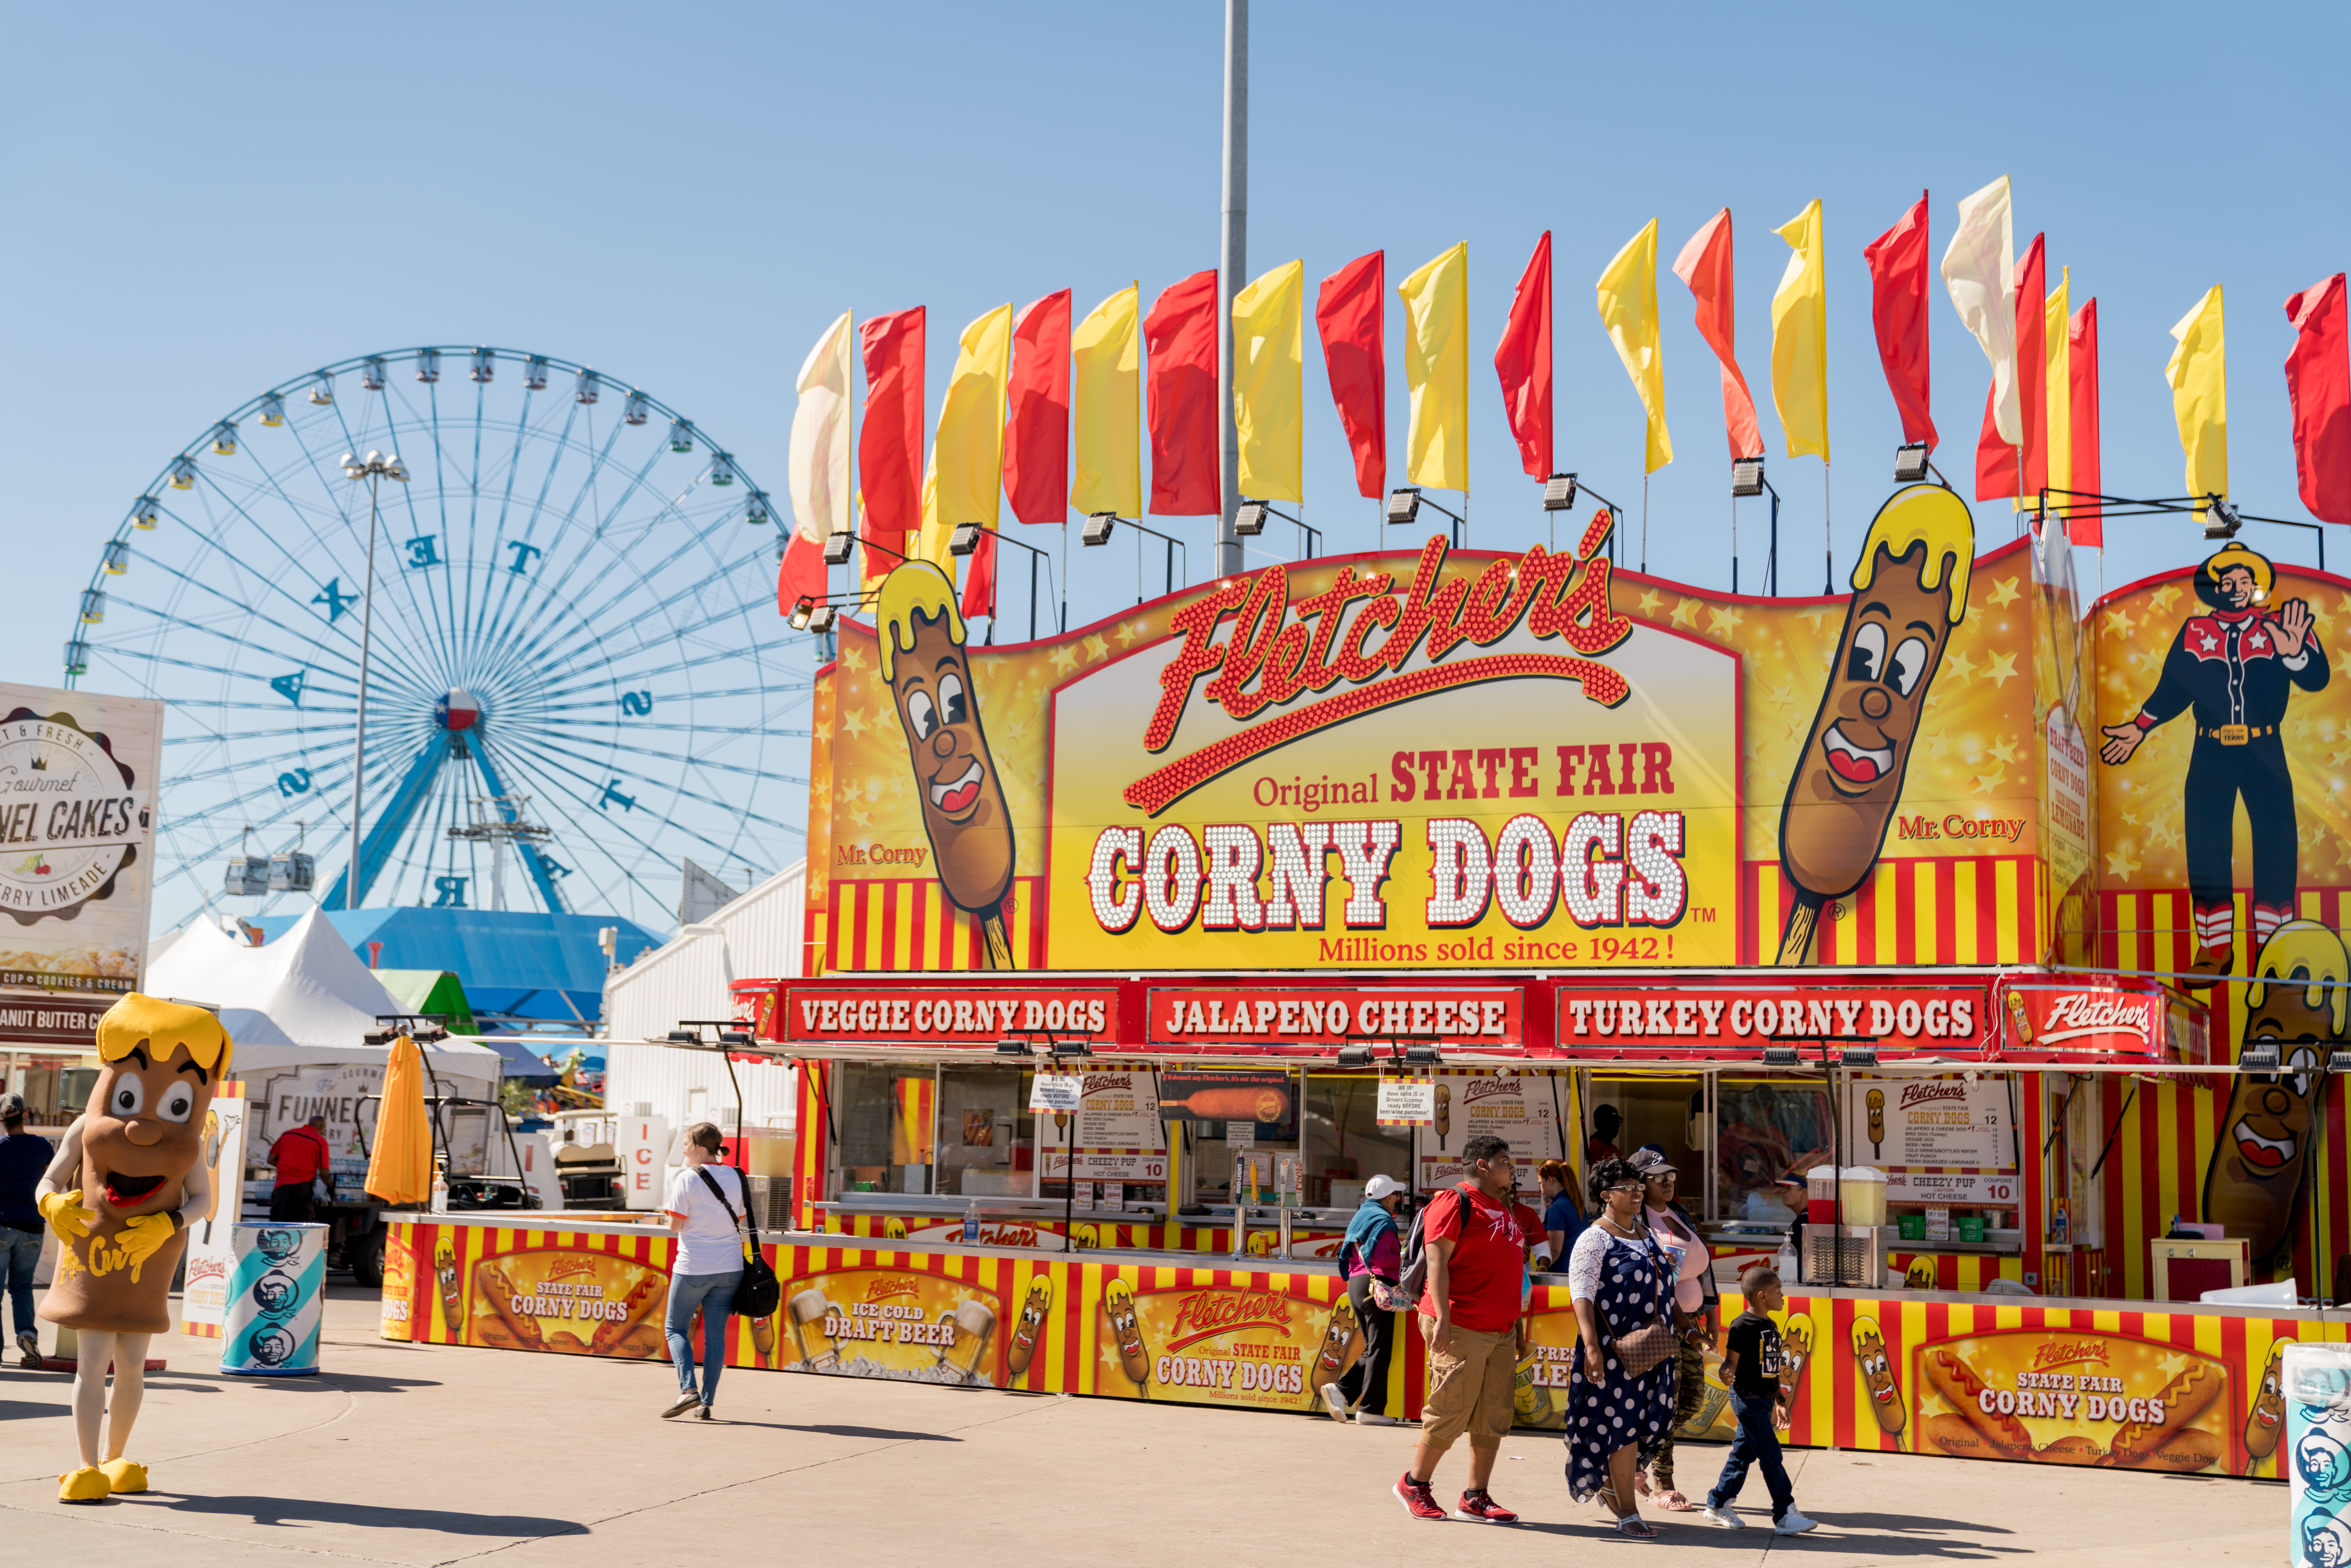 The exterior of Fletcher's Corny Dogs at the State Fair of Texas